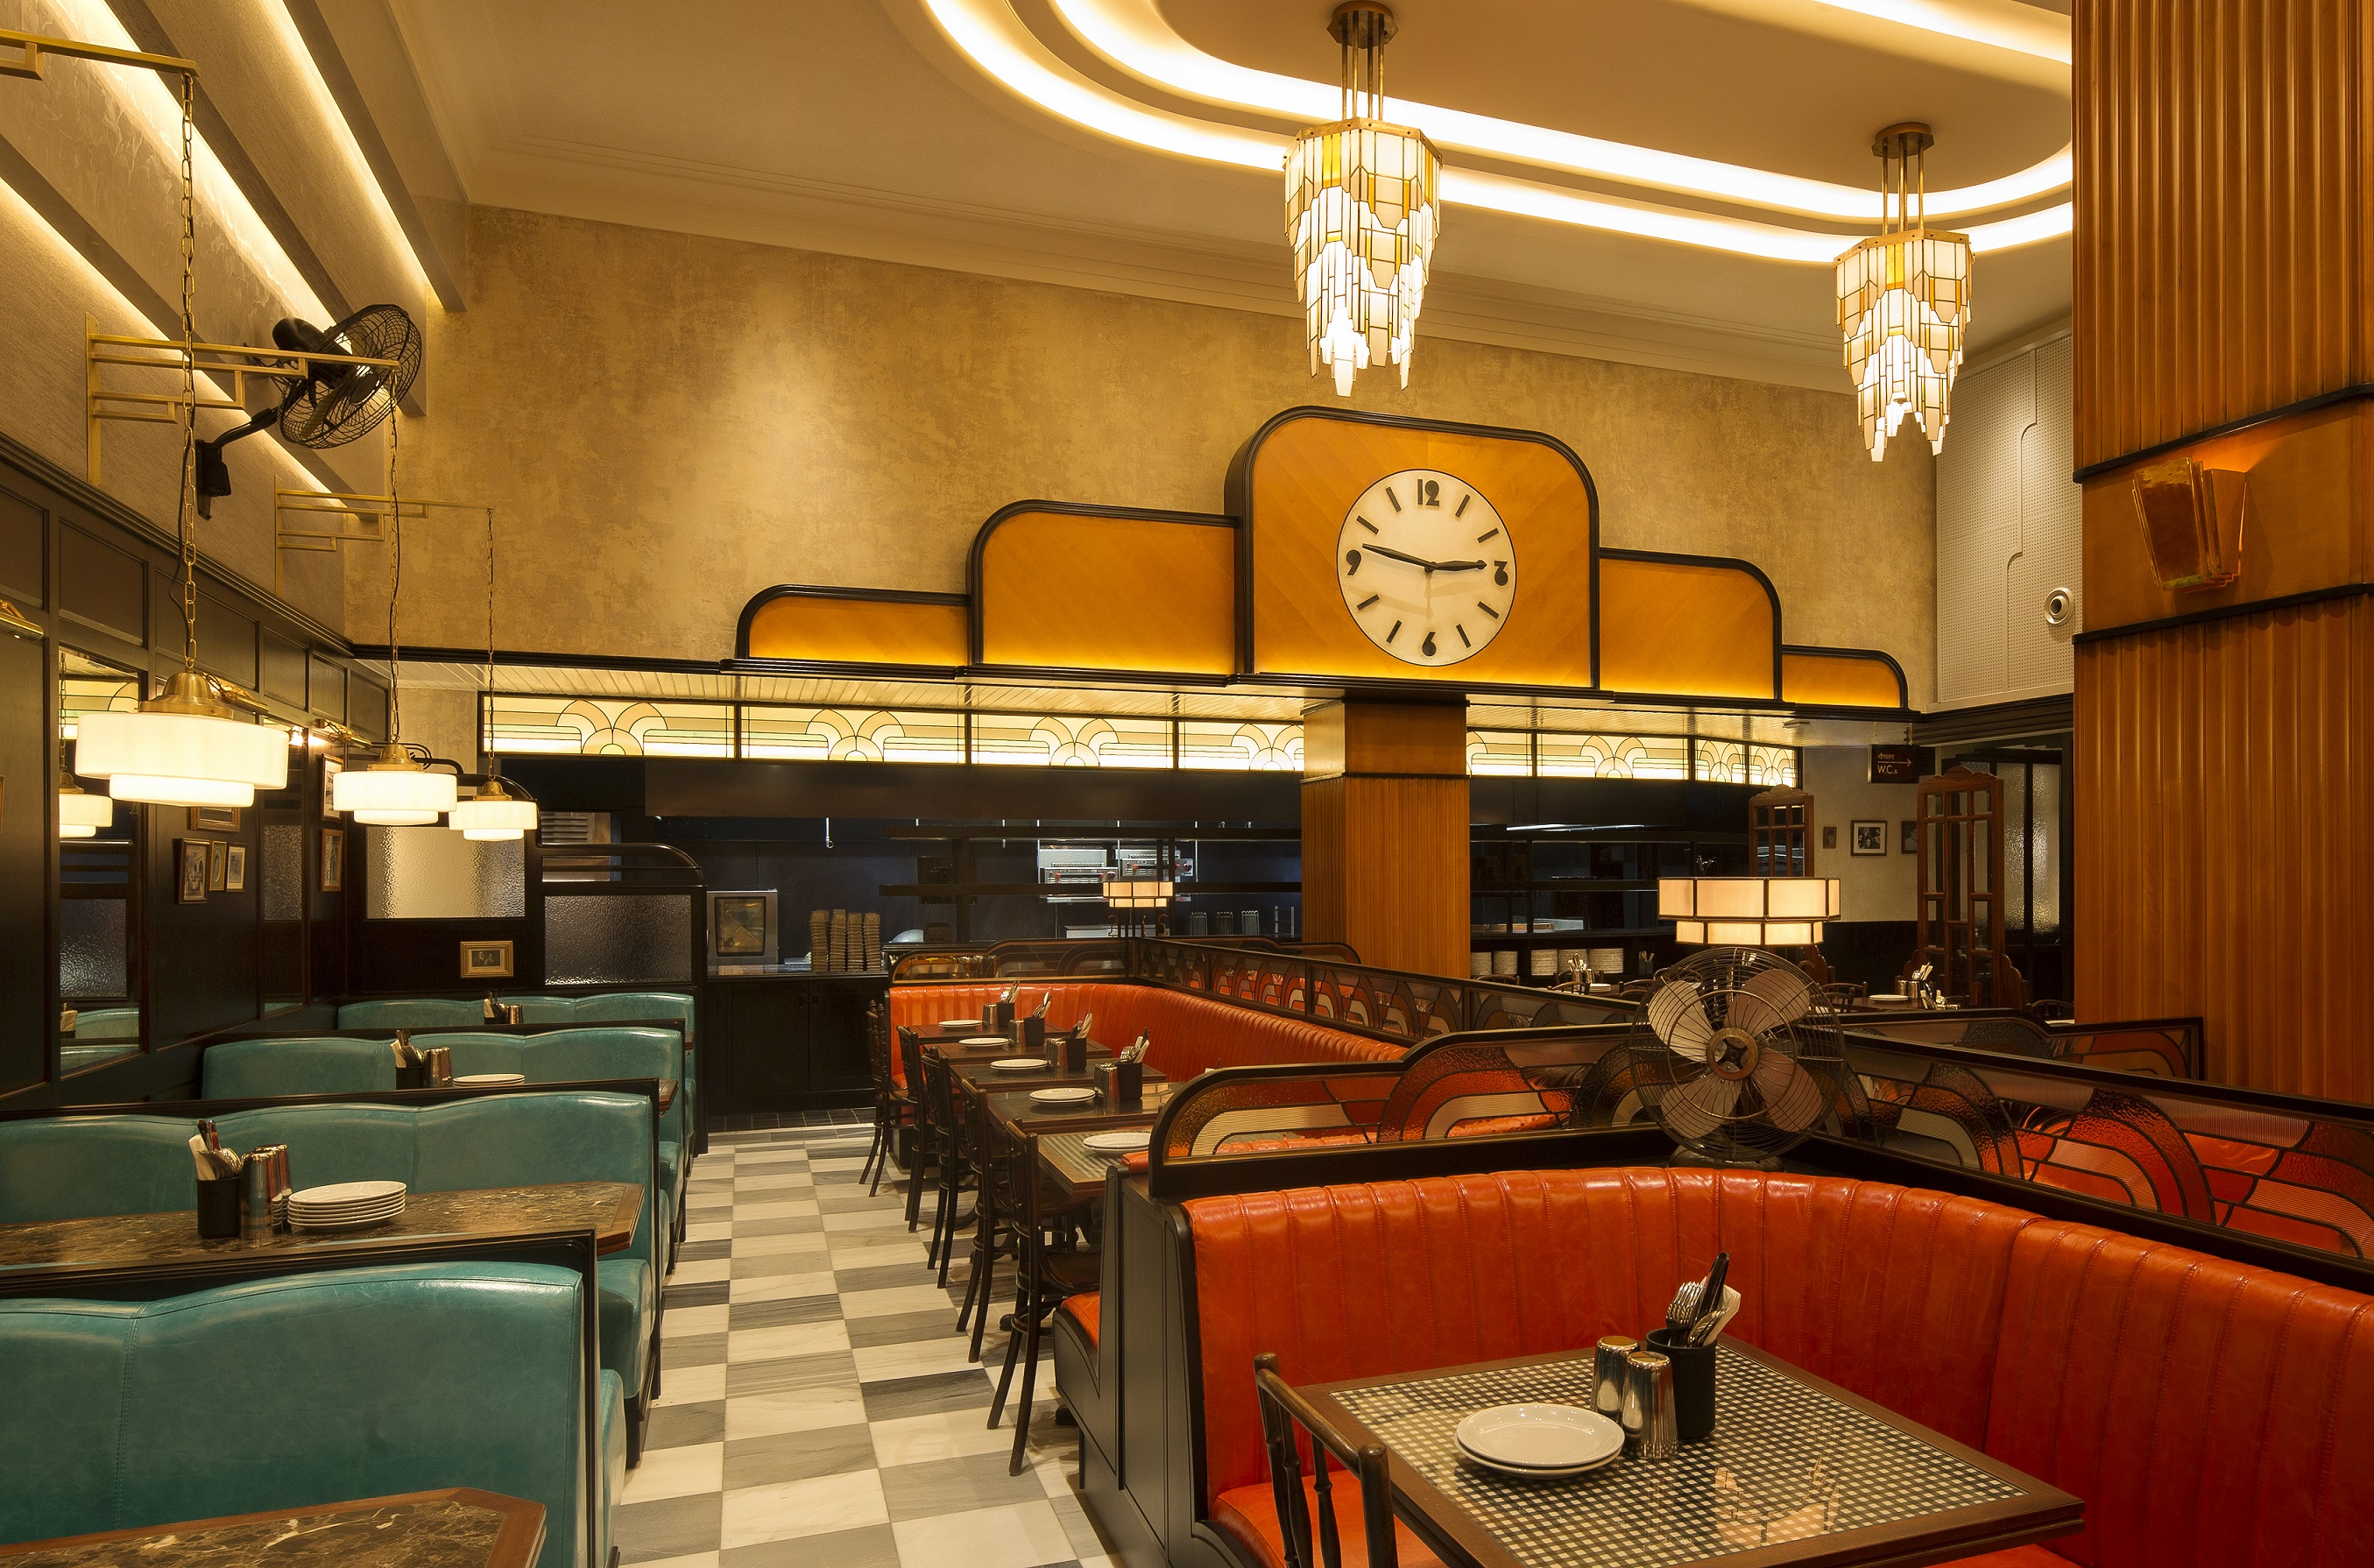 Dishoom has five restaurants located across areas of  London including Kensington (pictured) and King's Cross. The business also has eateries in Edinburgh and Manchester. (Photo Credit: John Carey)